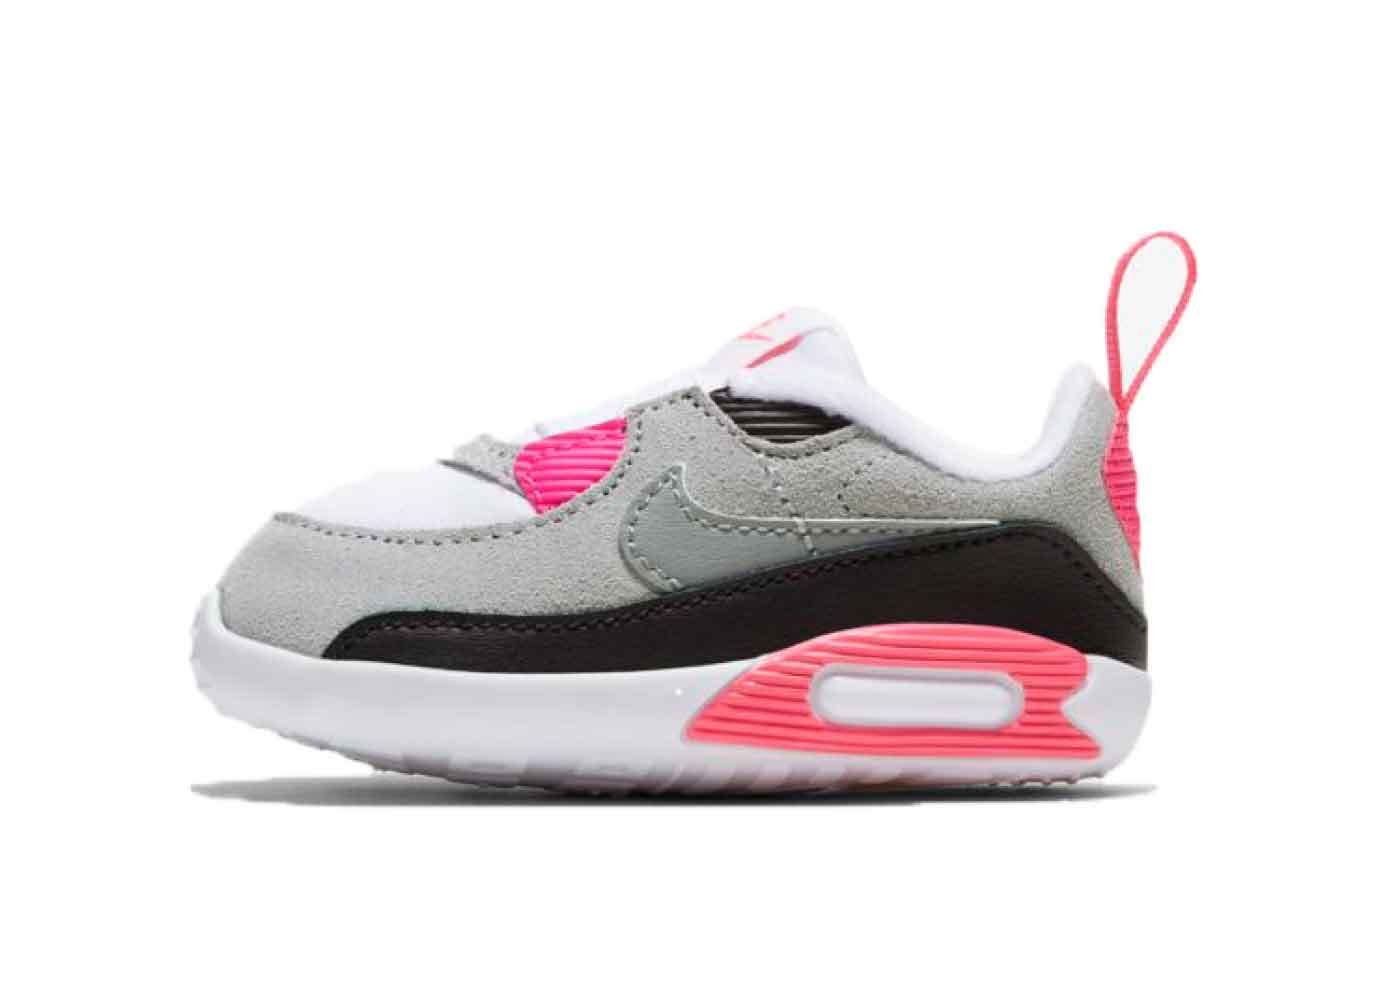 Nike Air Max 90 White/Particle Grey-Pink-Black Womens Infantsの写真